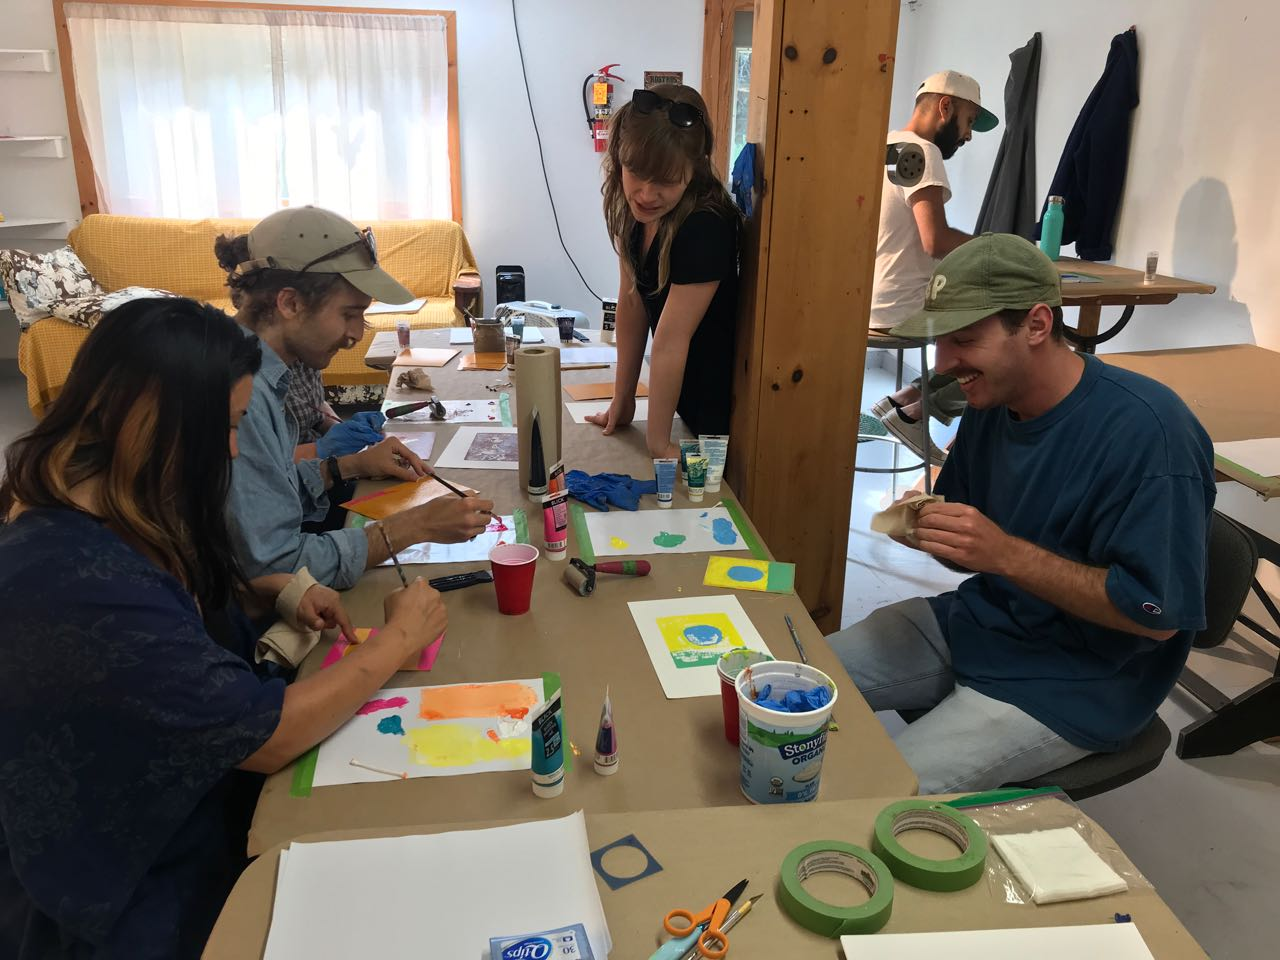 I offered a monotype workshop for the other residents one afternoon.